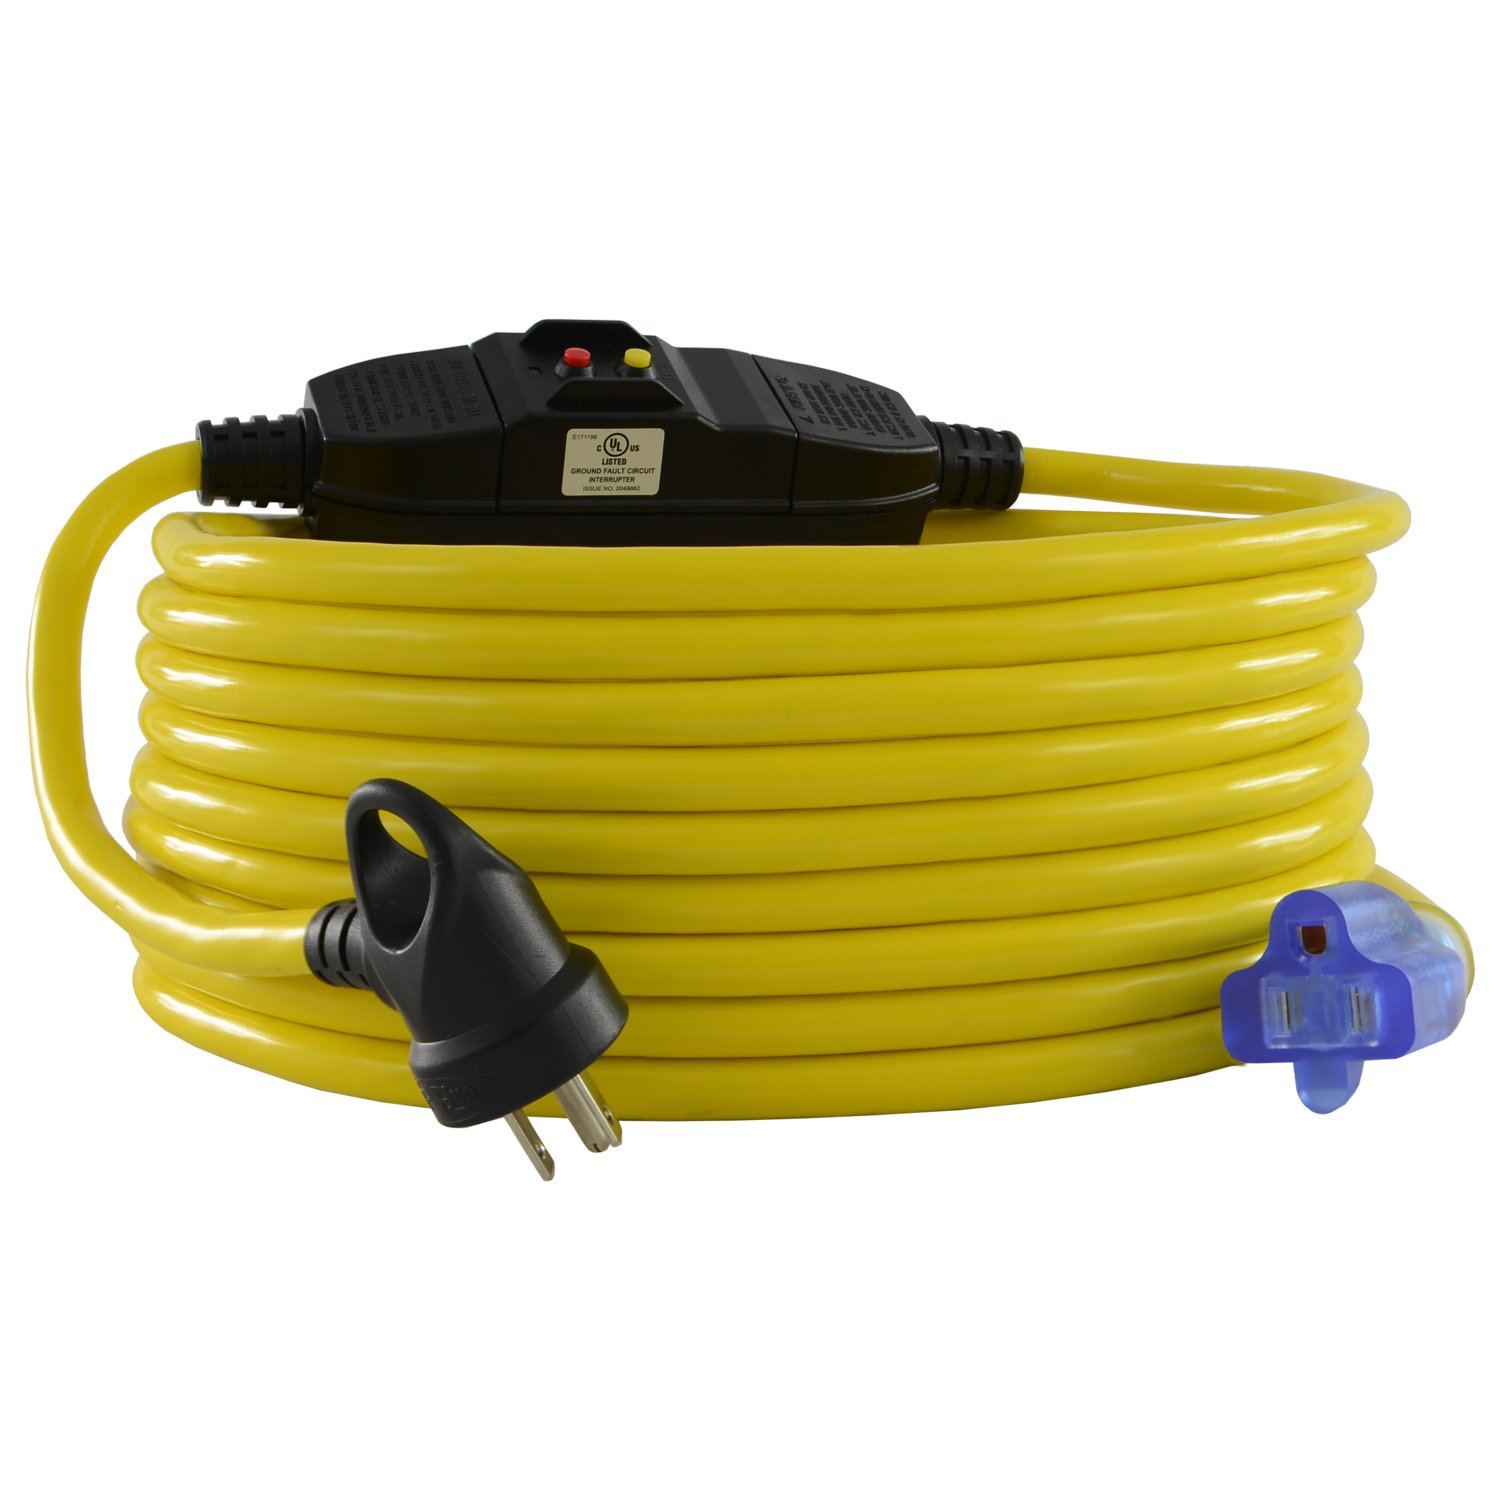 Conntek 20251-100-IG GFCI Extension Cord, 100-Feet, Yellow